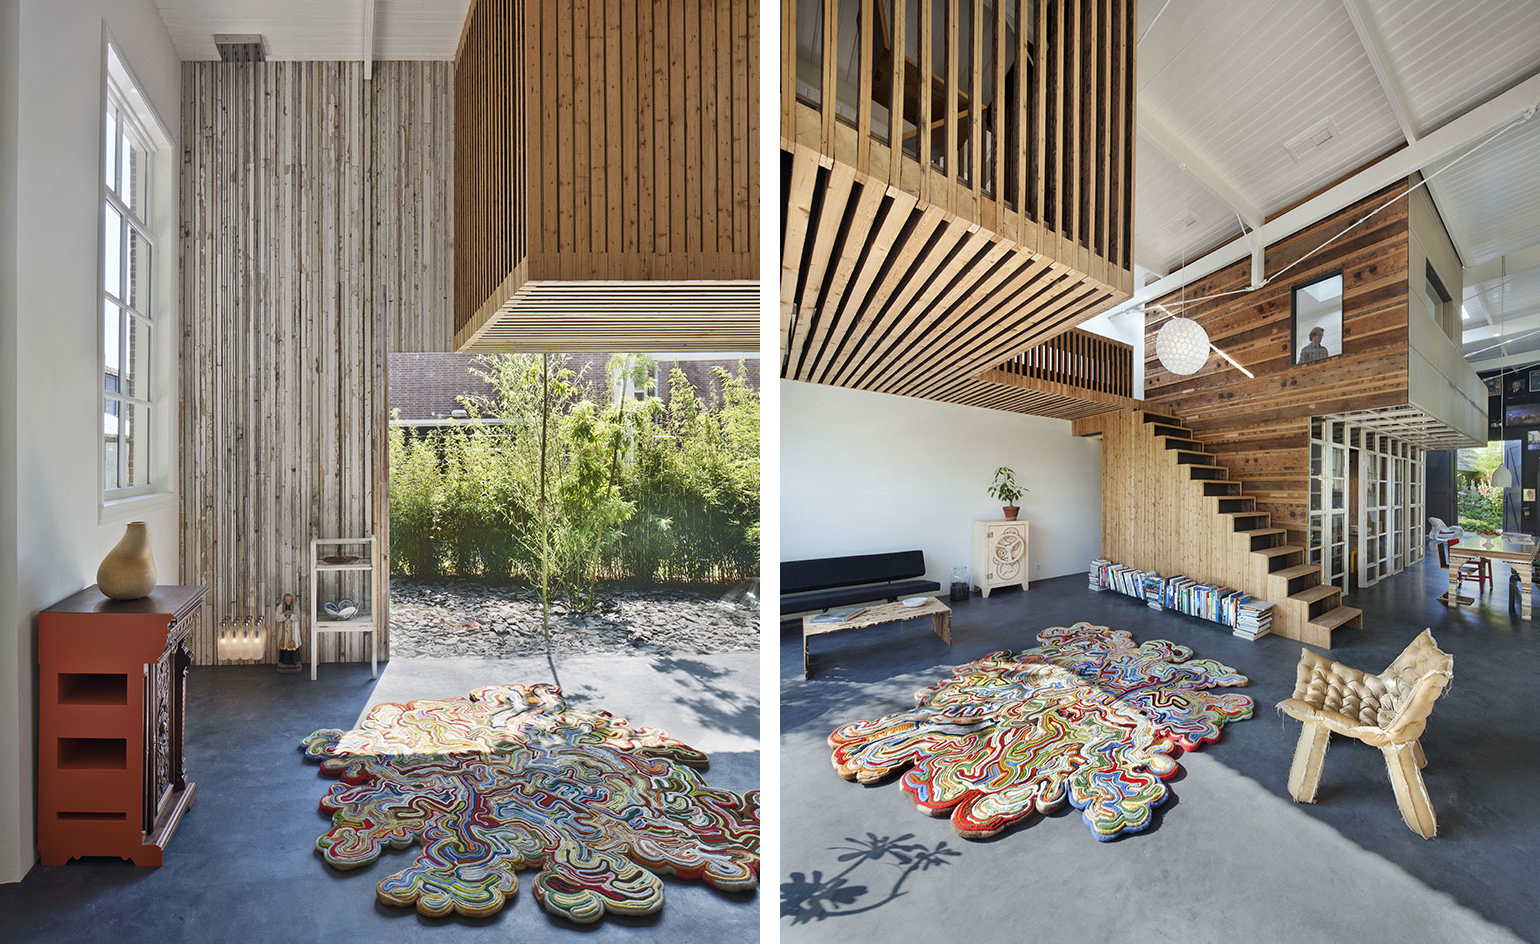 A sculptural structure in the middle connects and divides the space at the same time